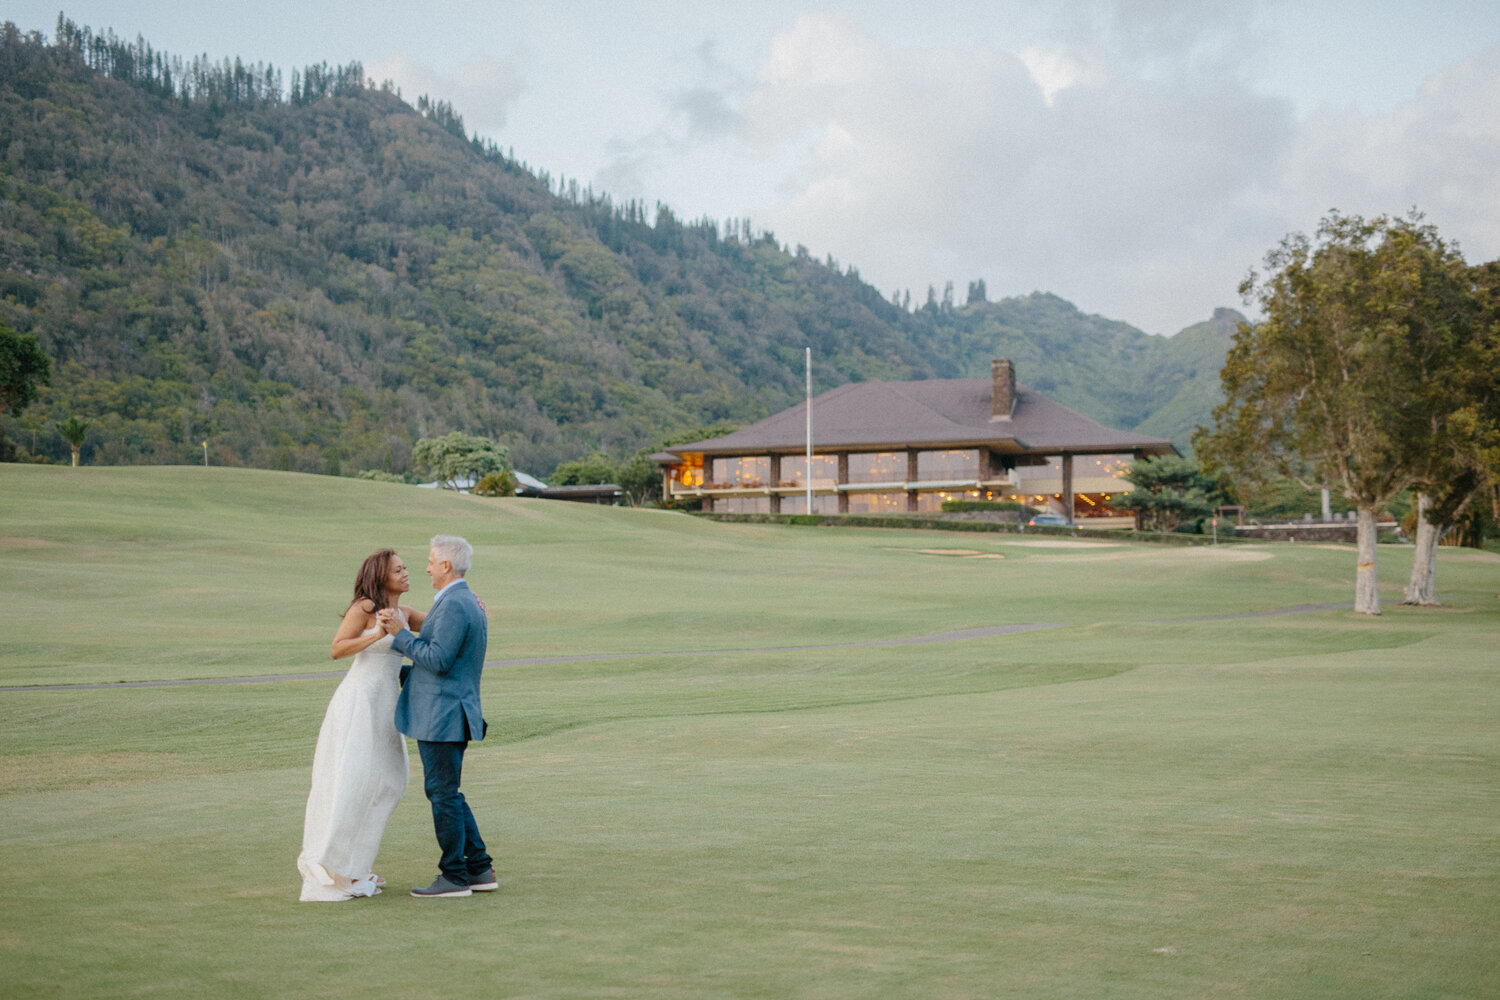 oahu-country-club-wedding-8.jpg